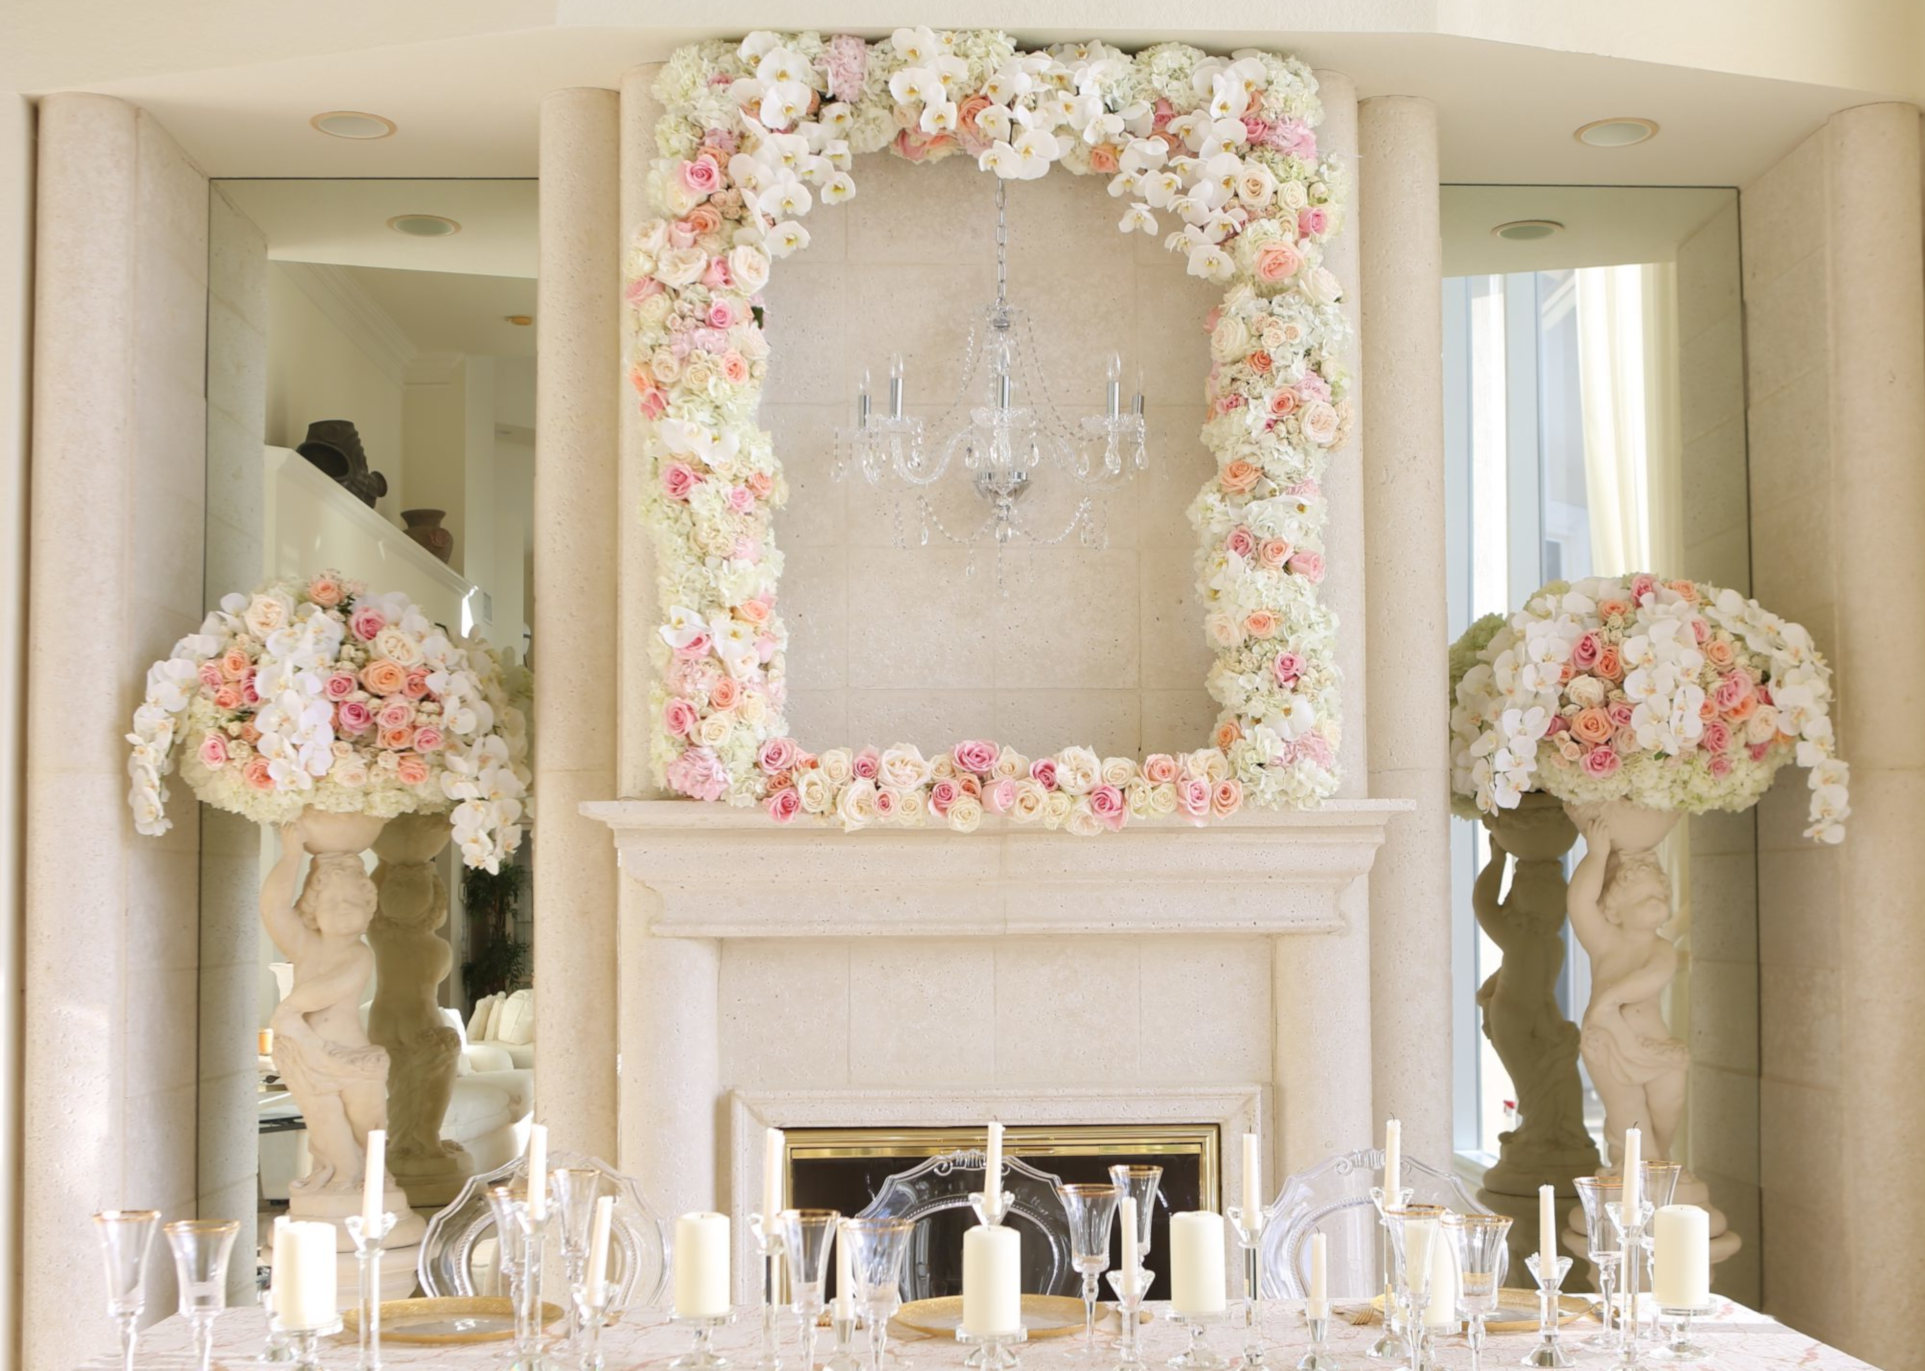 Ideas to Choose the Wedding Flowers For Fireplace